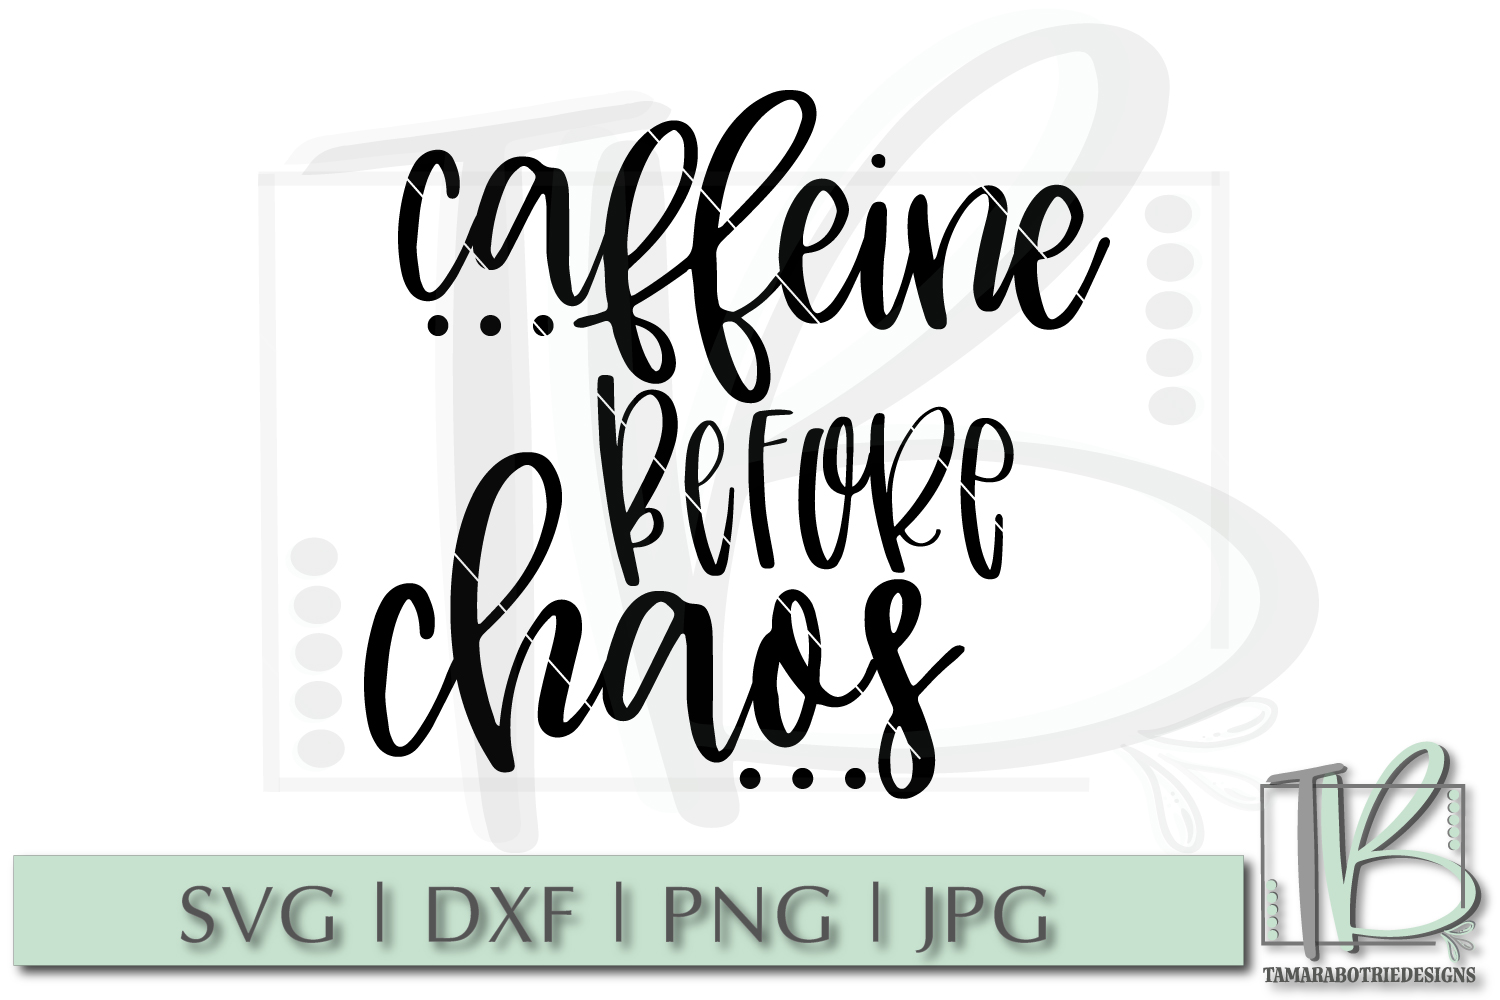 Caffeine Before Chaos SVG example image 2